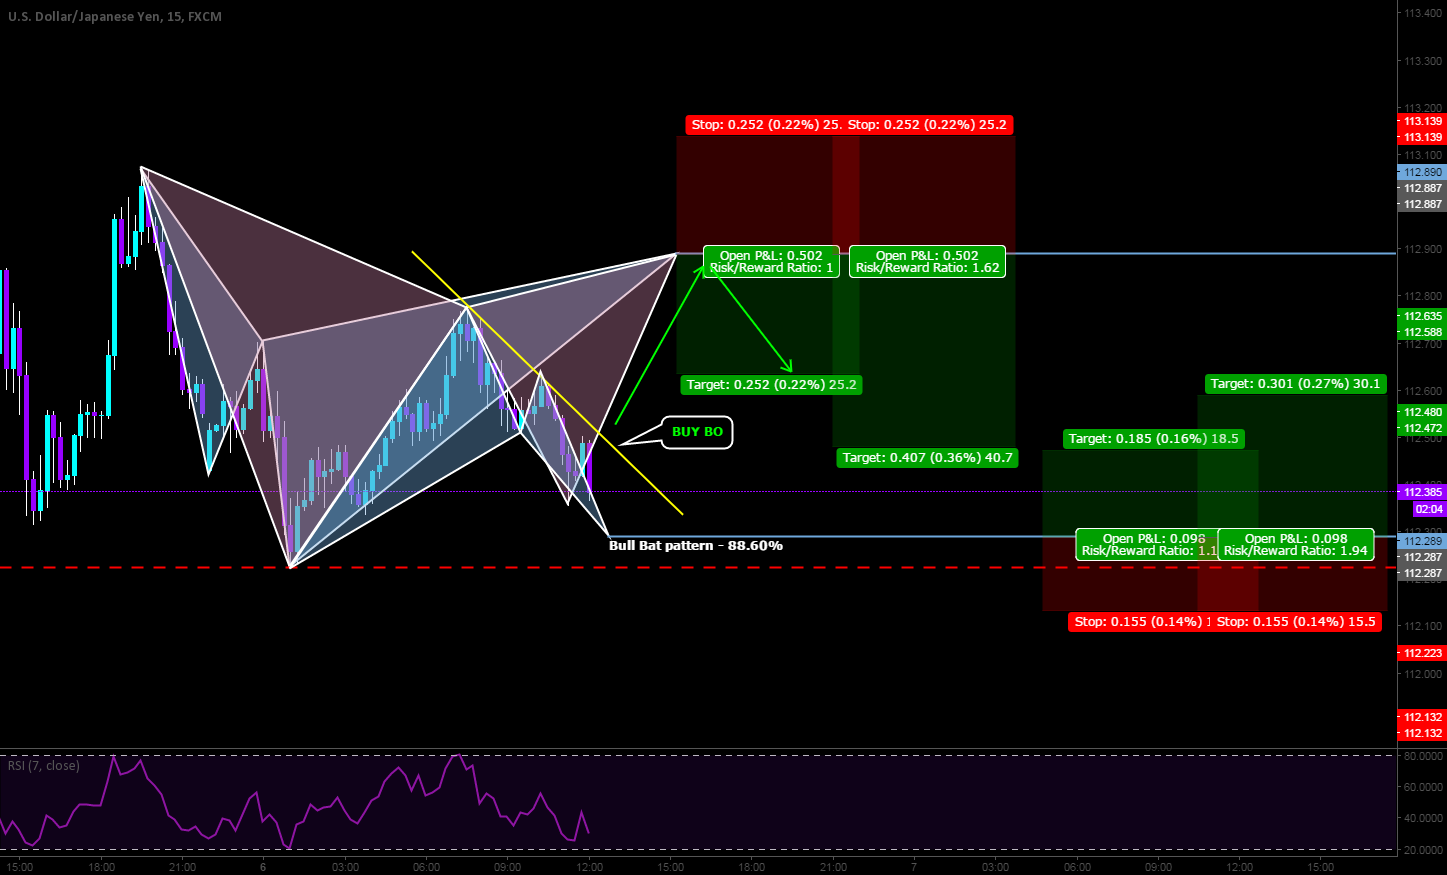 Intraday opportunity on the USDJPY.